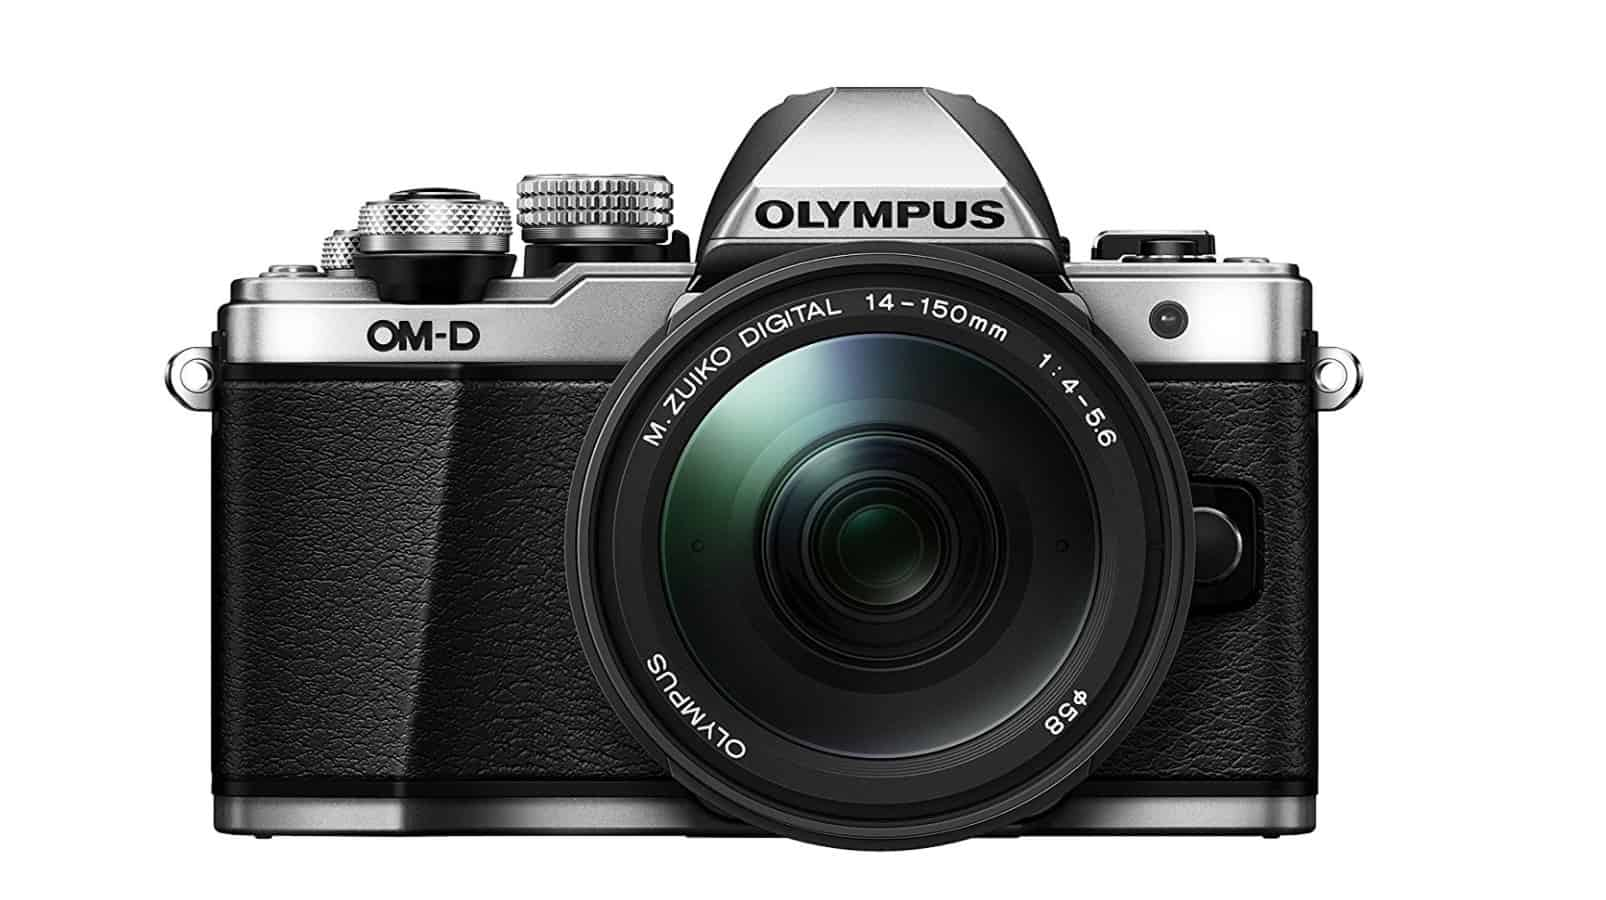 Olympus OM-D E-M10 Mark II, mirrorless